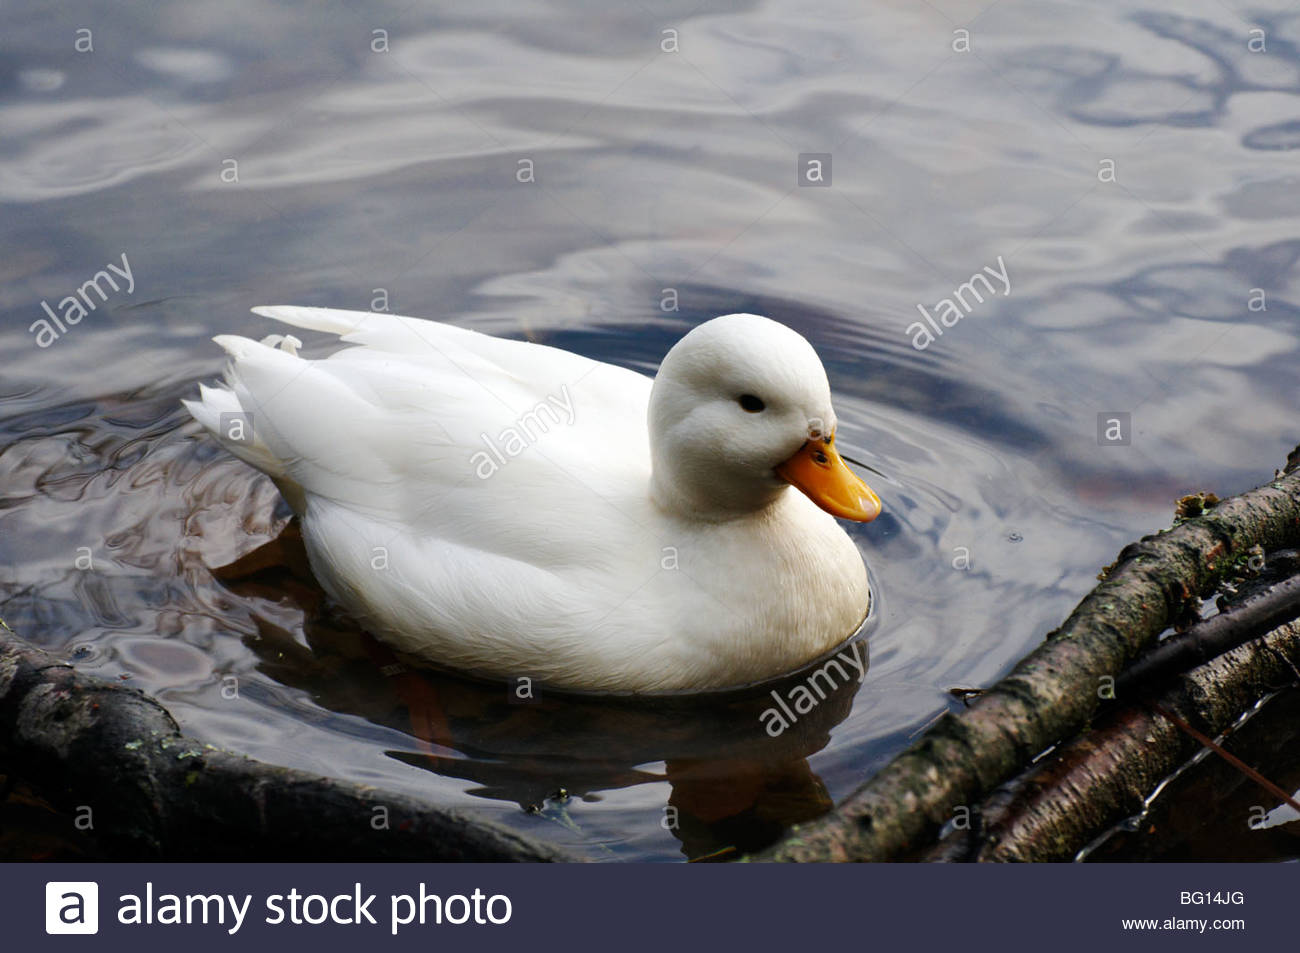 A white small domesticated call duck with yellow bill swimming in the water - Stock Image